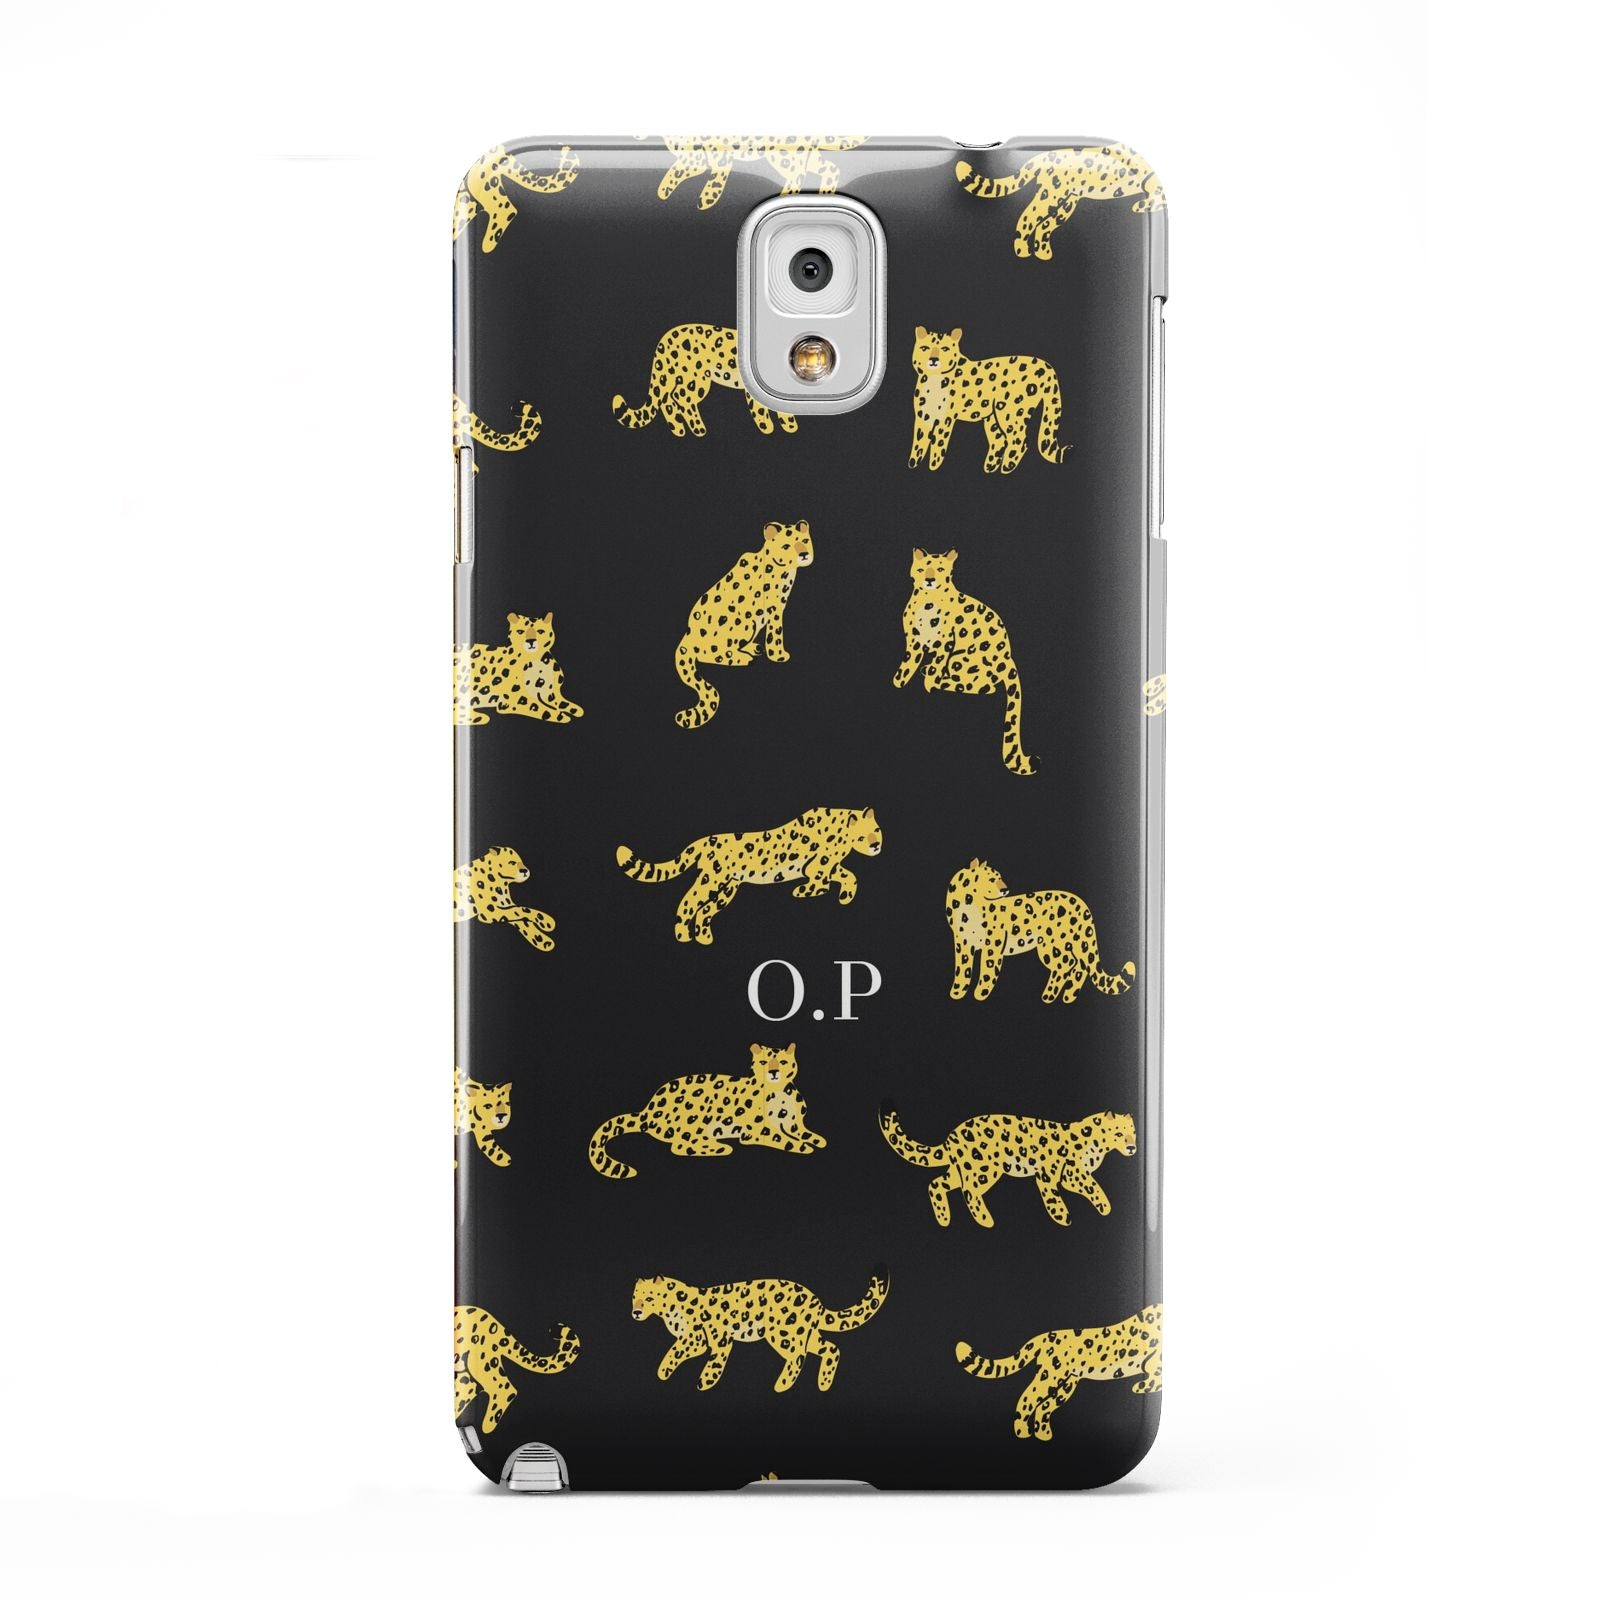 Prowling Leopard Samsung Galaxy Note 3 Case